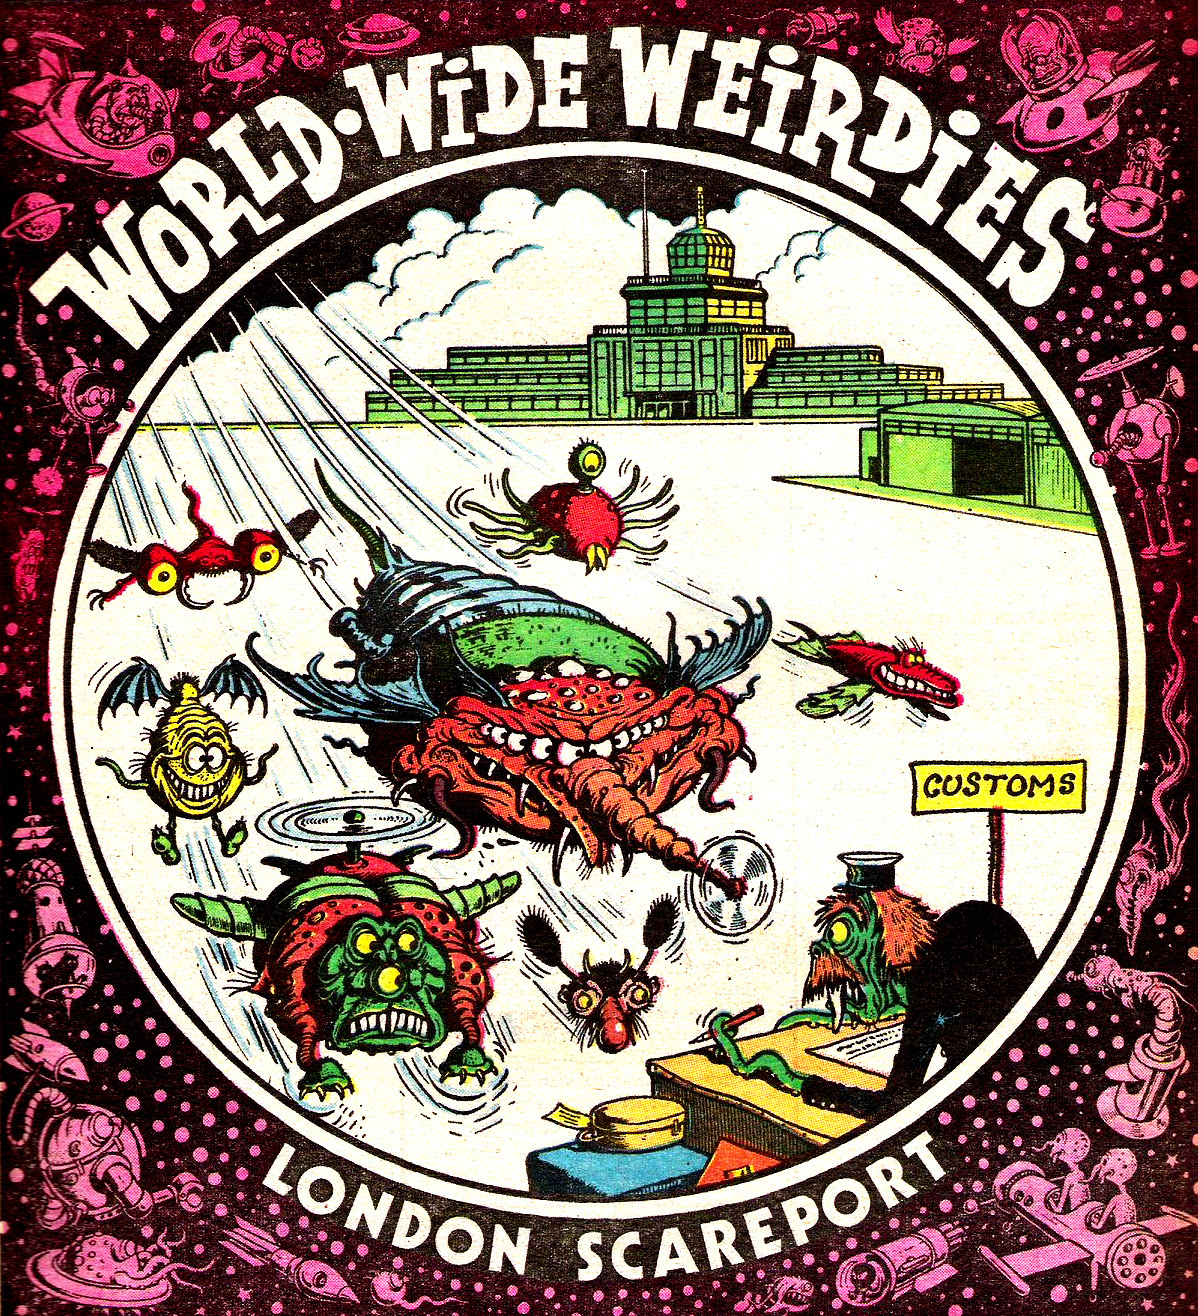 Ken Reid - World Wide Weirdies 14